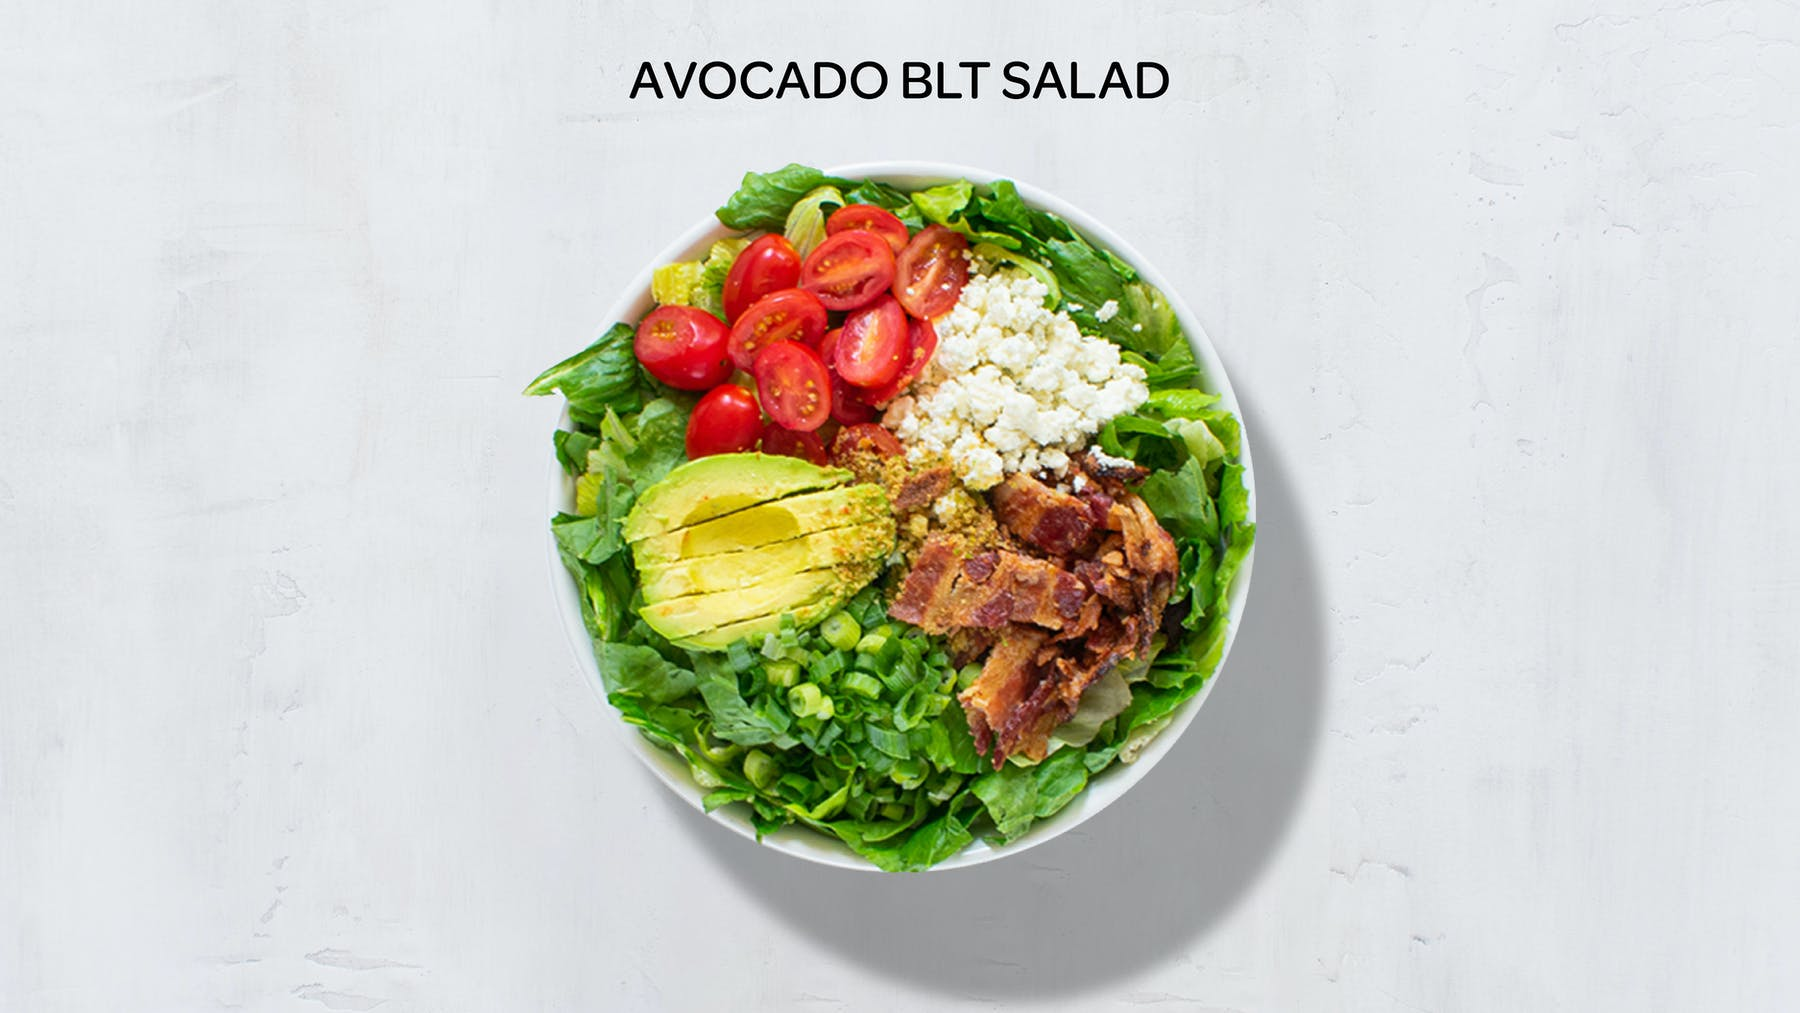 a bowl of avocado blt salad